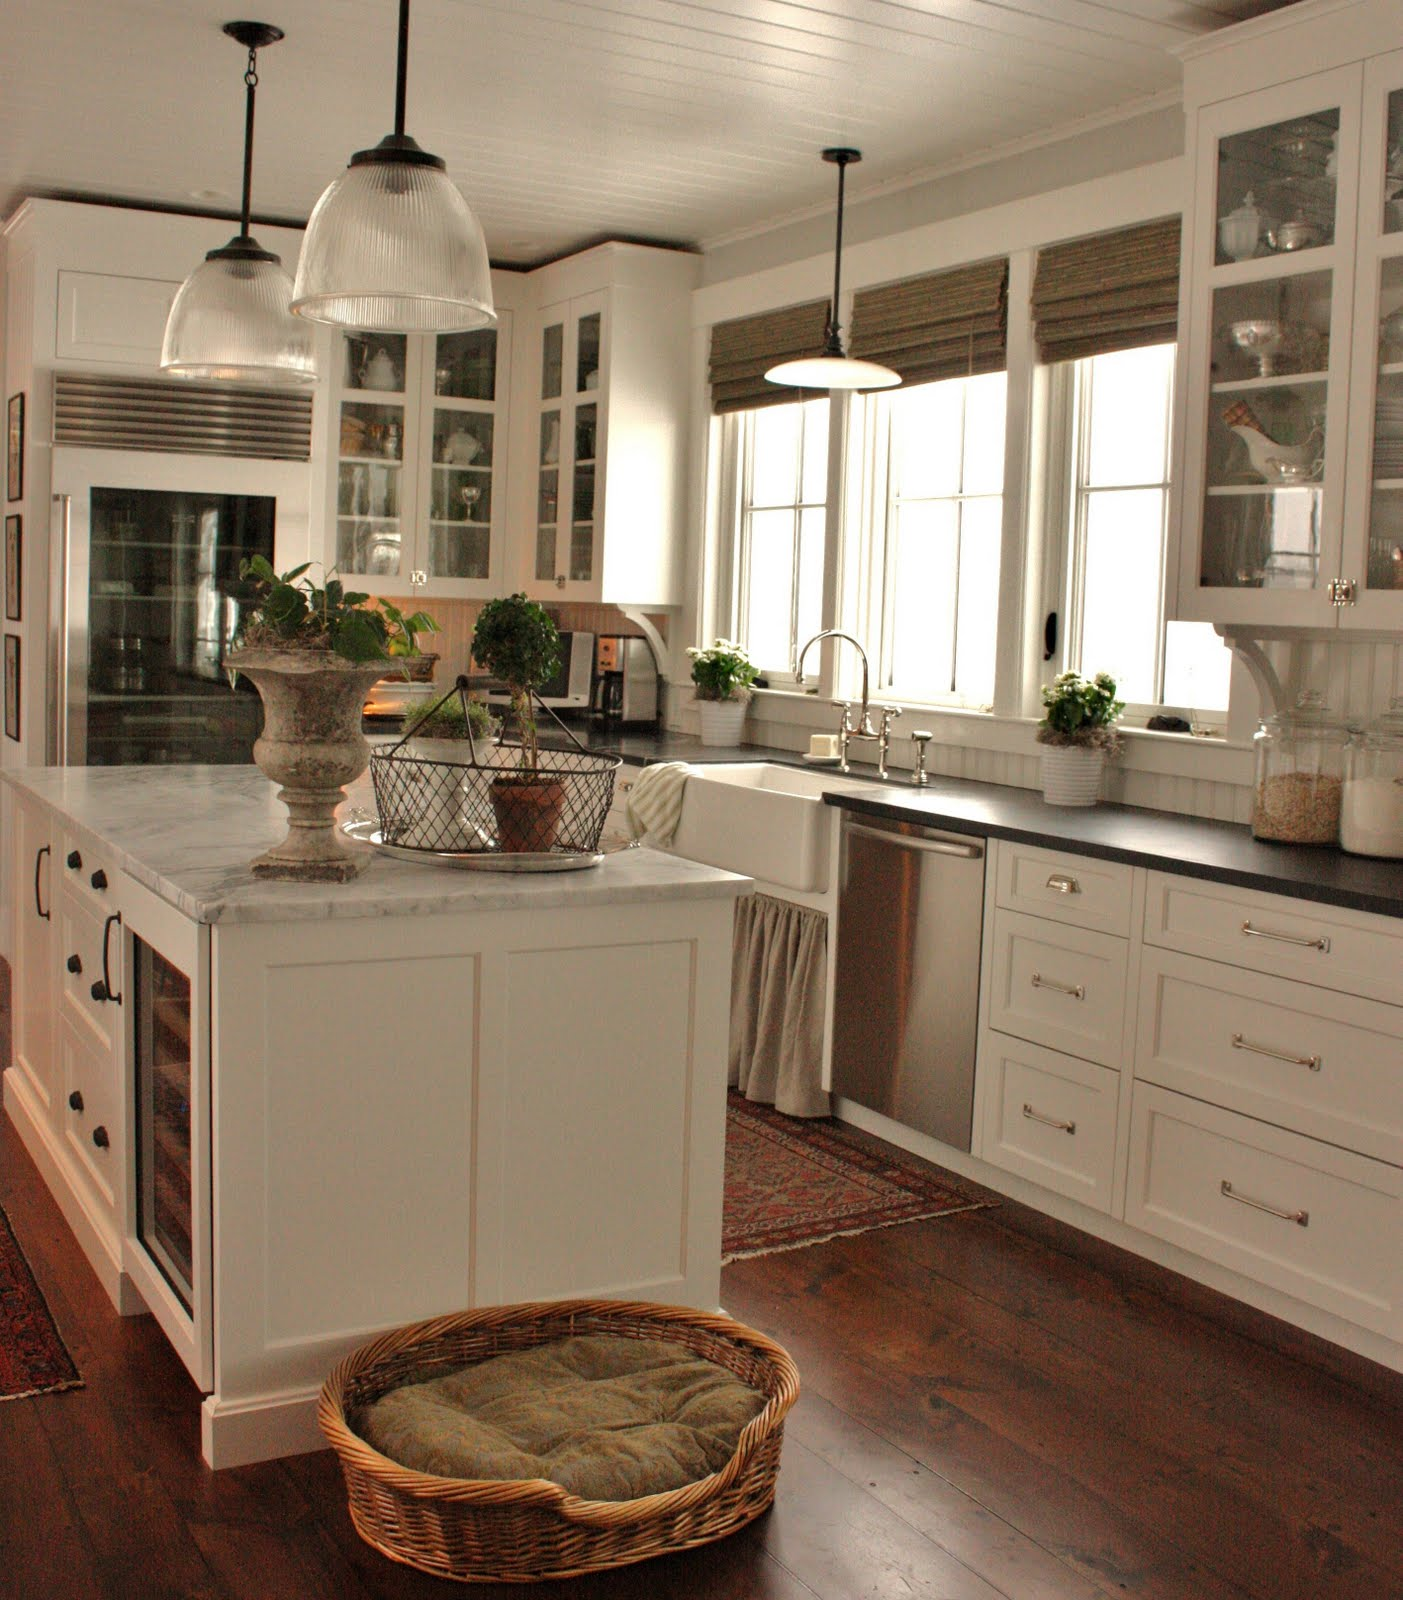 Farmhouse Kitchen White Cabinets cottage farmhouse kitchens {inspiring in white} - fox hollow cottage